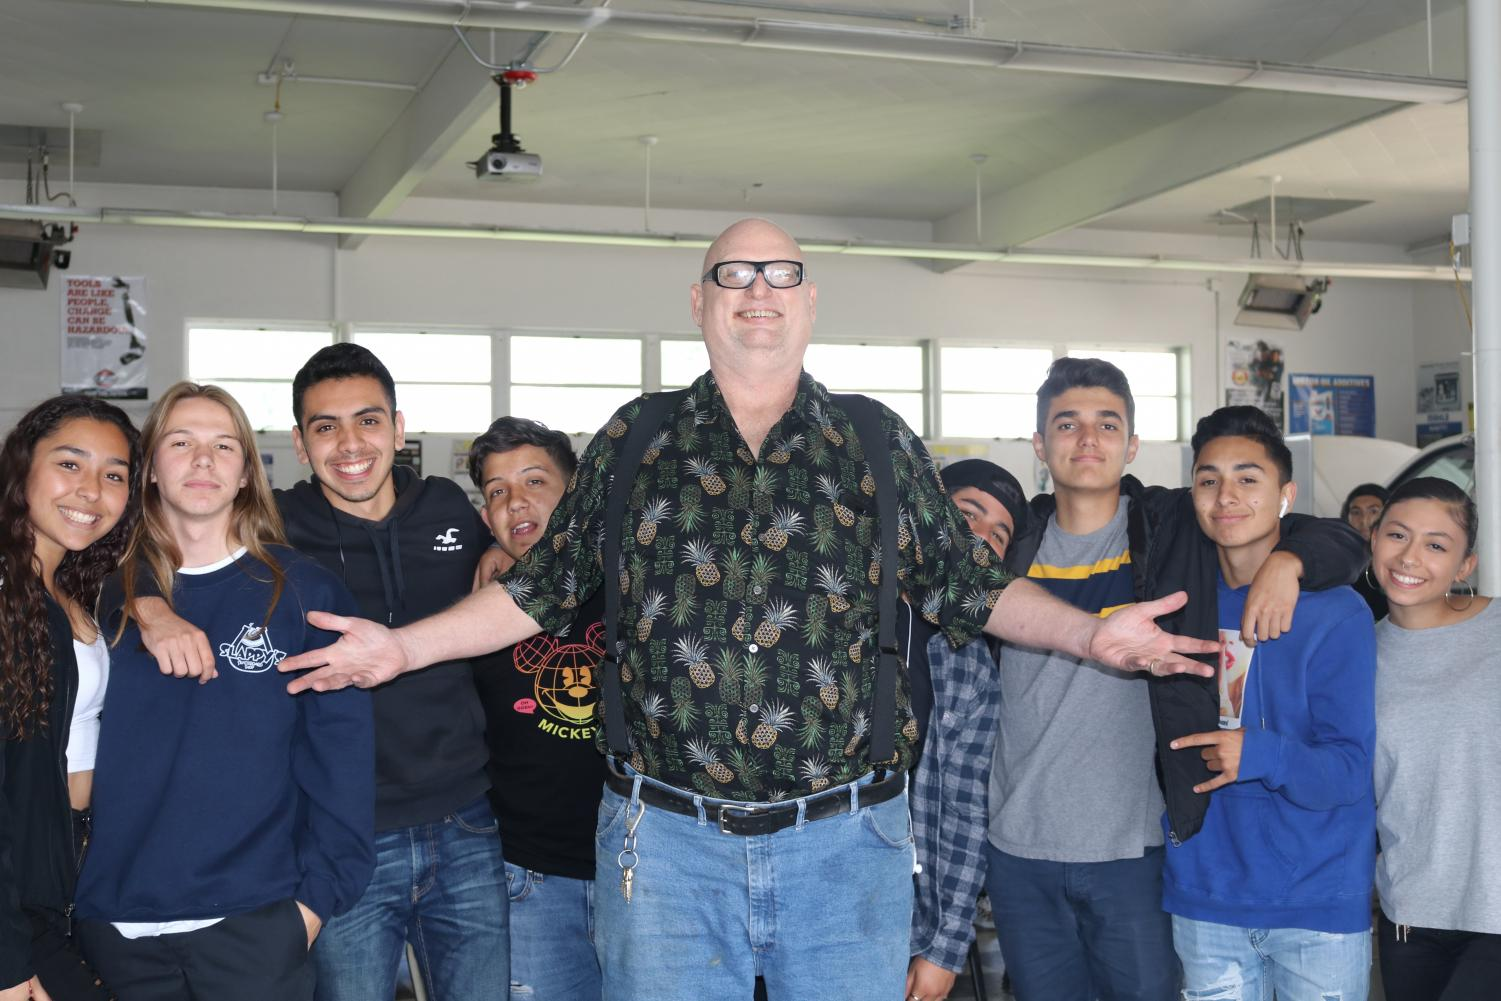 Ben Hazel poses with his sixth period students during his final days teaching at Bonita Vista High. He prepared the auto shop for the next teacher to take over.